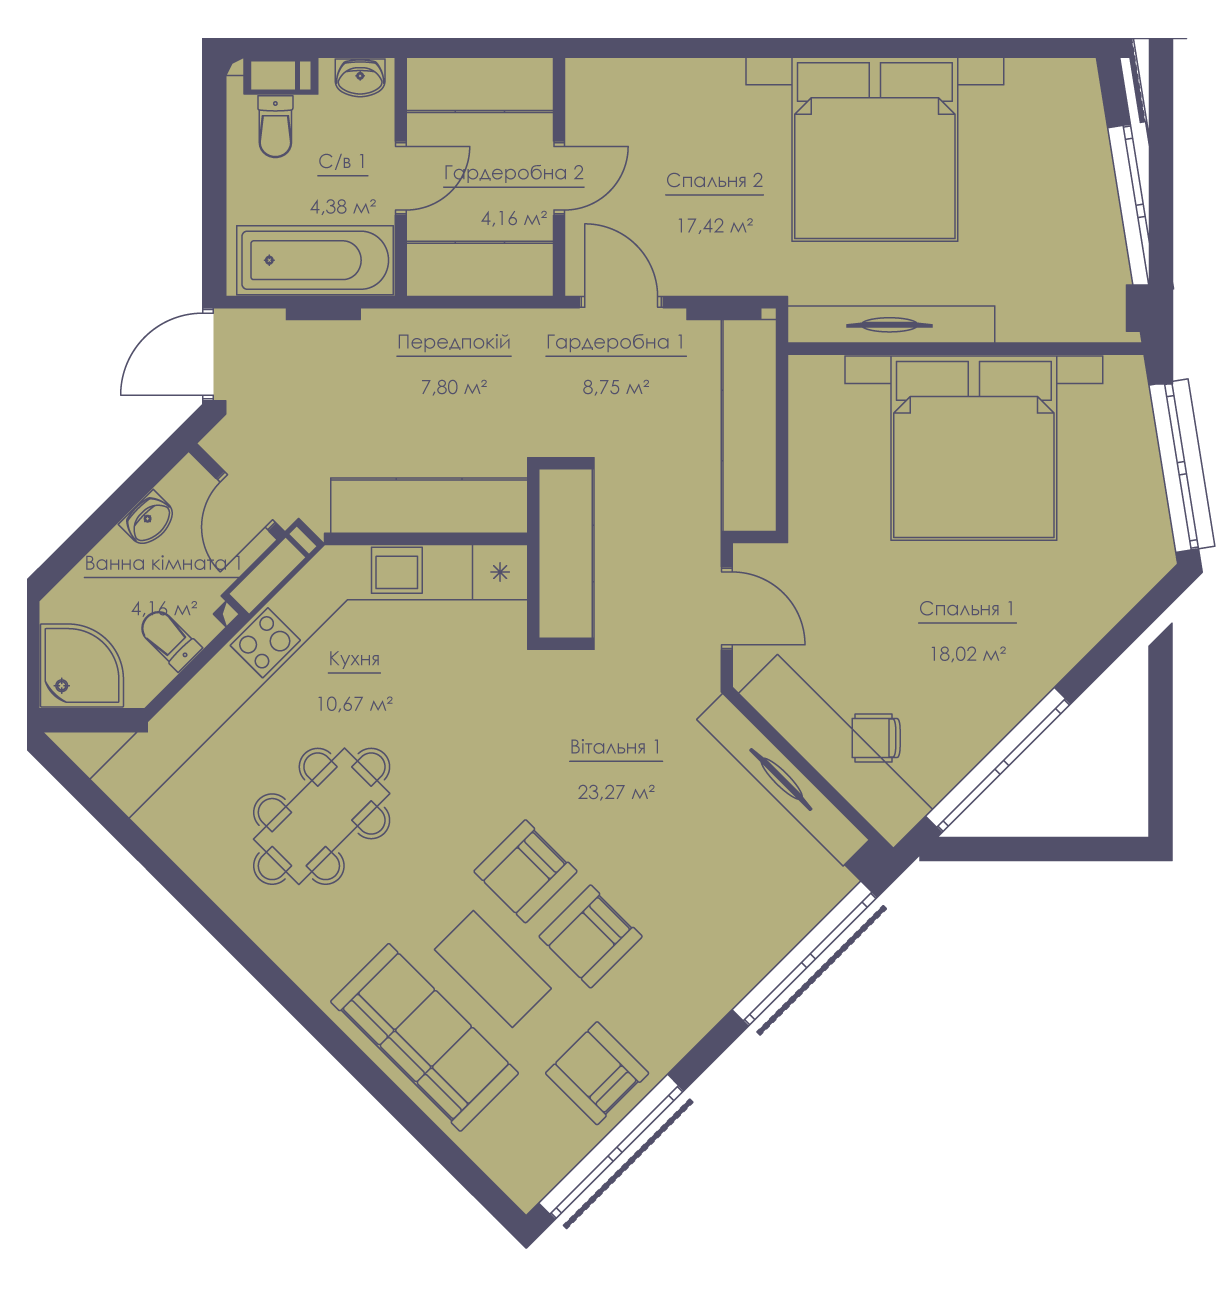 Apartment layout KV_57_3a_1_1_12-1